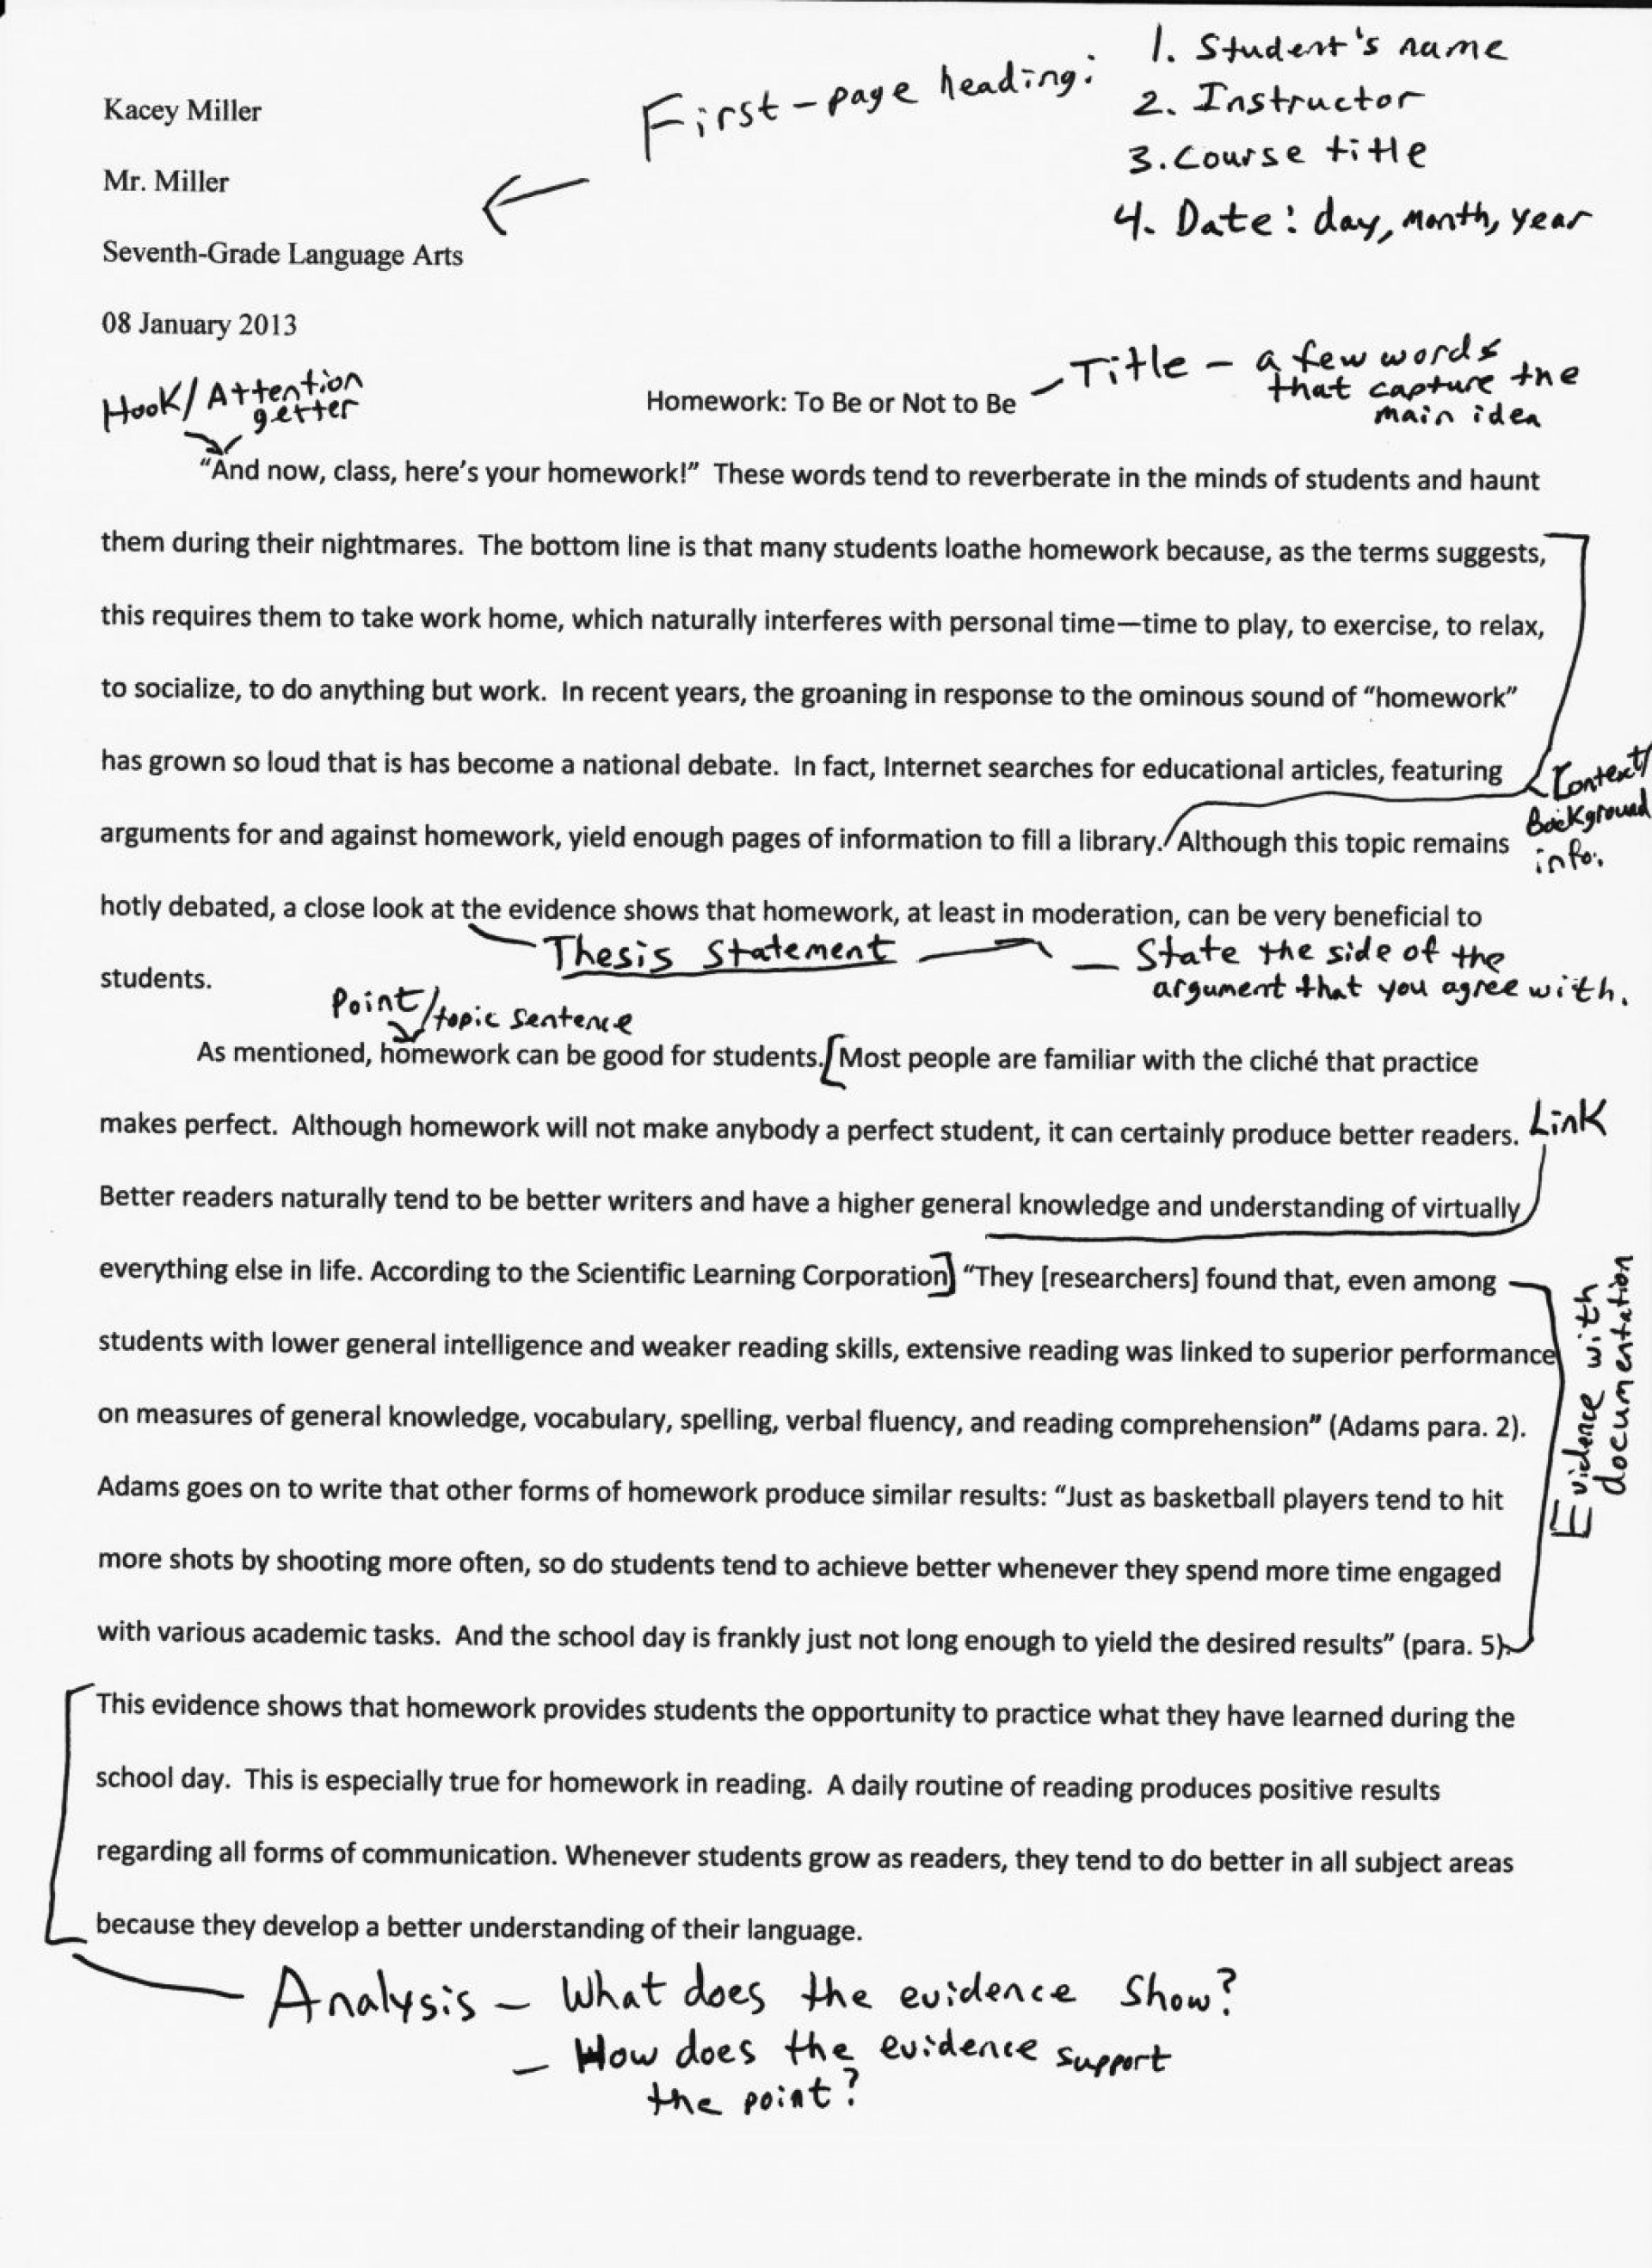 011 Word Essay Example Words Page Funny College Free Unforgettable 700 How Many Pages On Save Fuel Format 1920